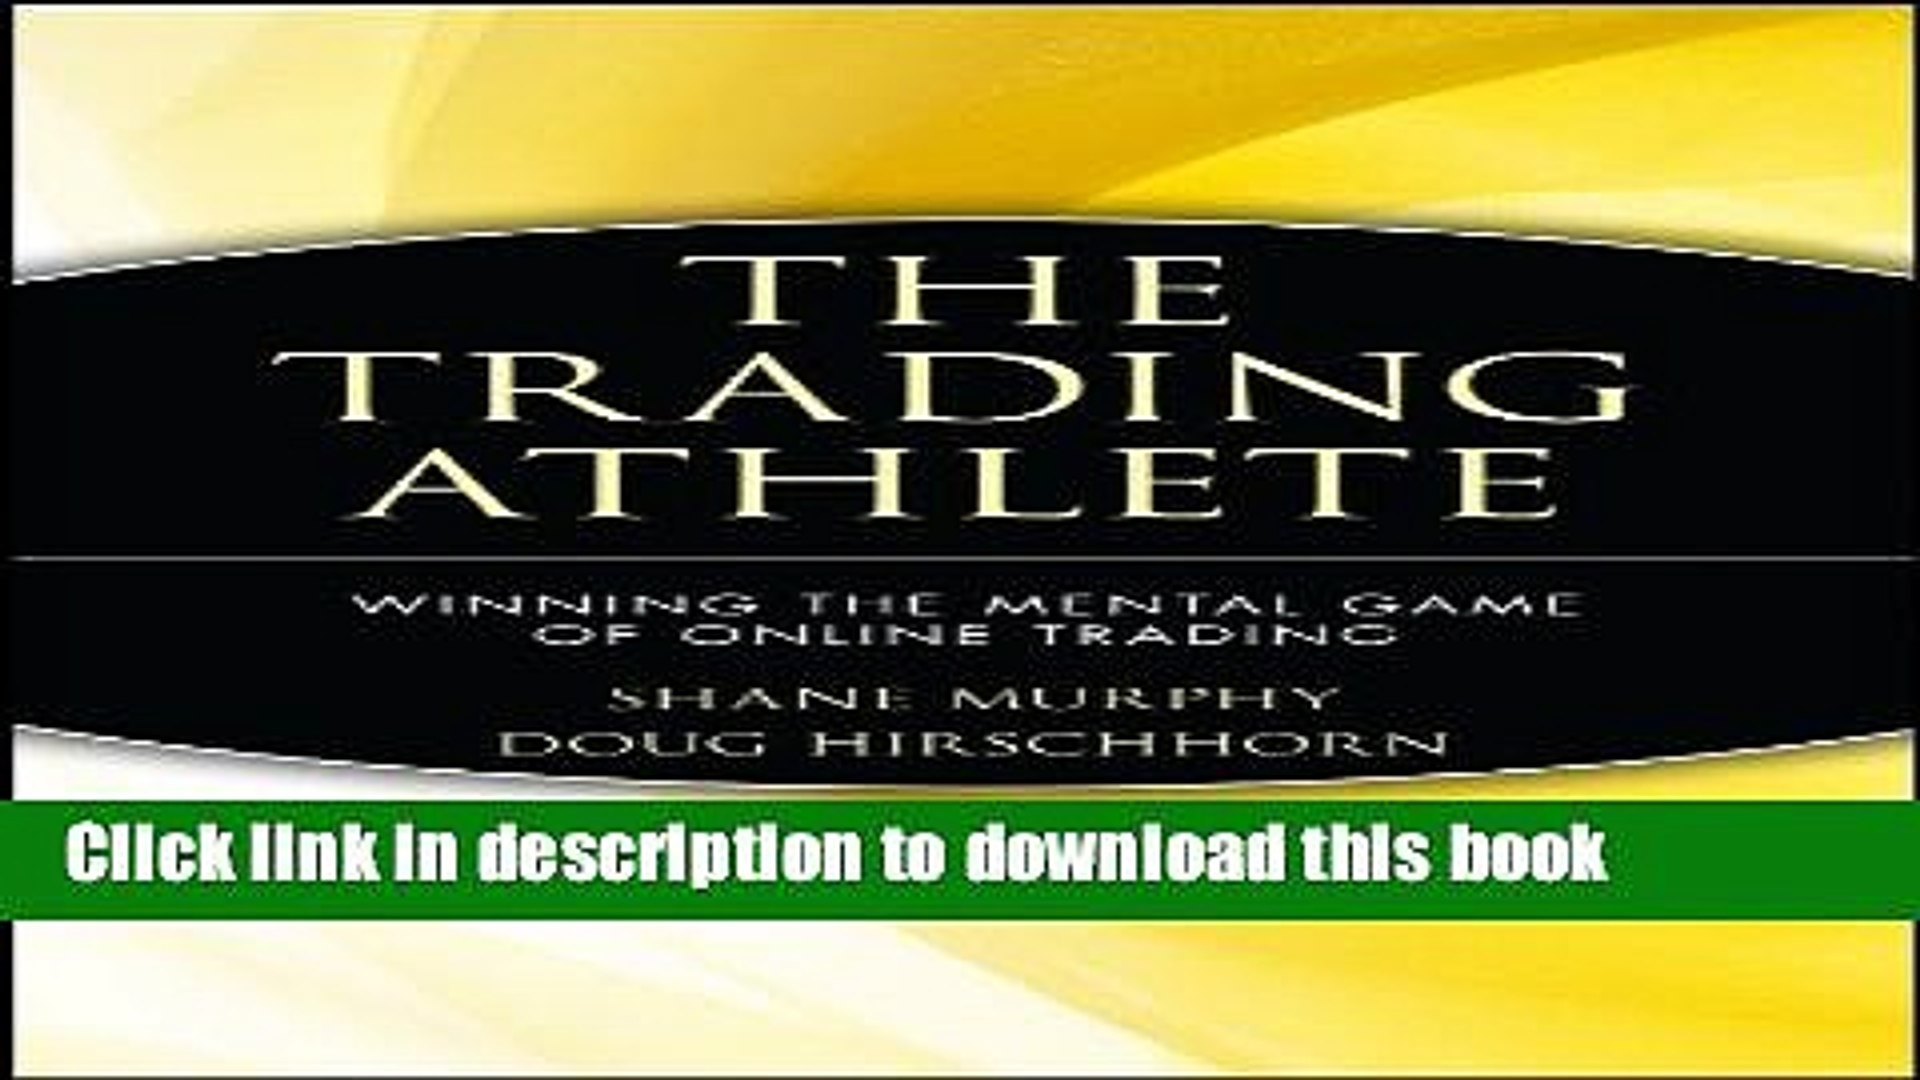 [Popular] The Trading Athlete: Winning the Mental Game of Online Trading Paperback Free